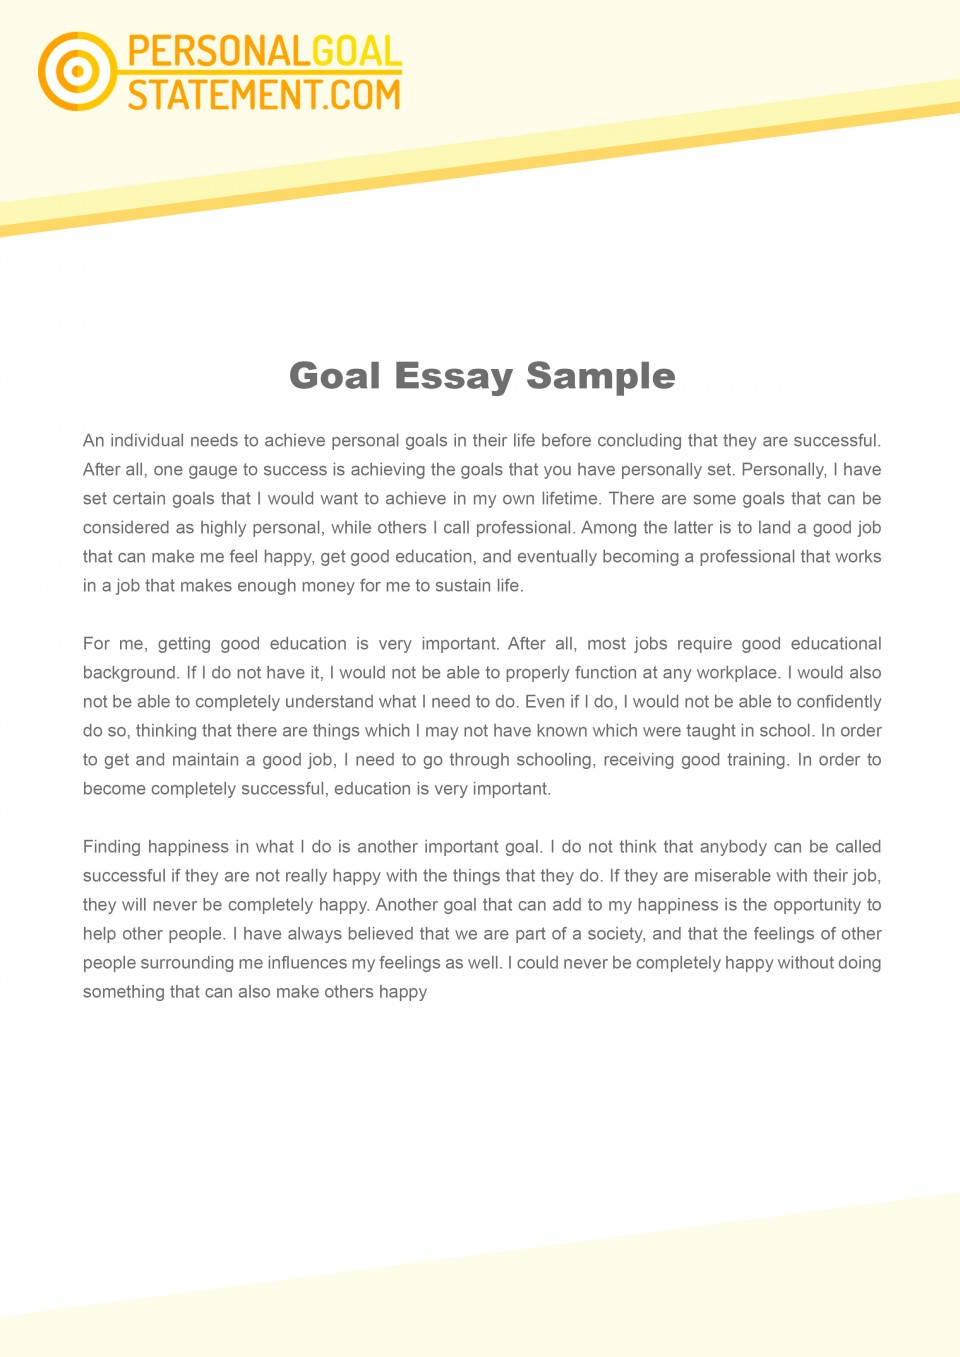 011 Essay Example Goals Career Goal Uniforms Debate Personal Examples L Awesome Mba Consulting Academic For College Sample 960